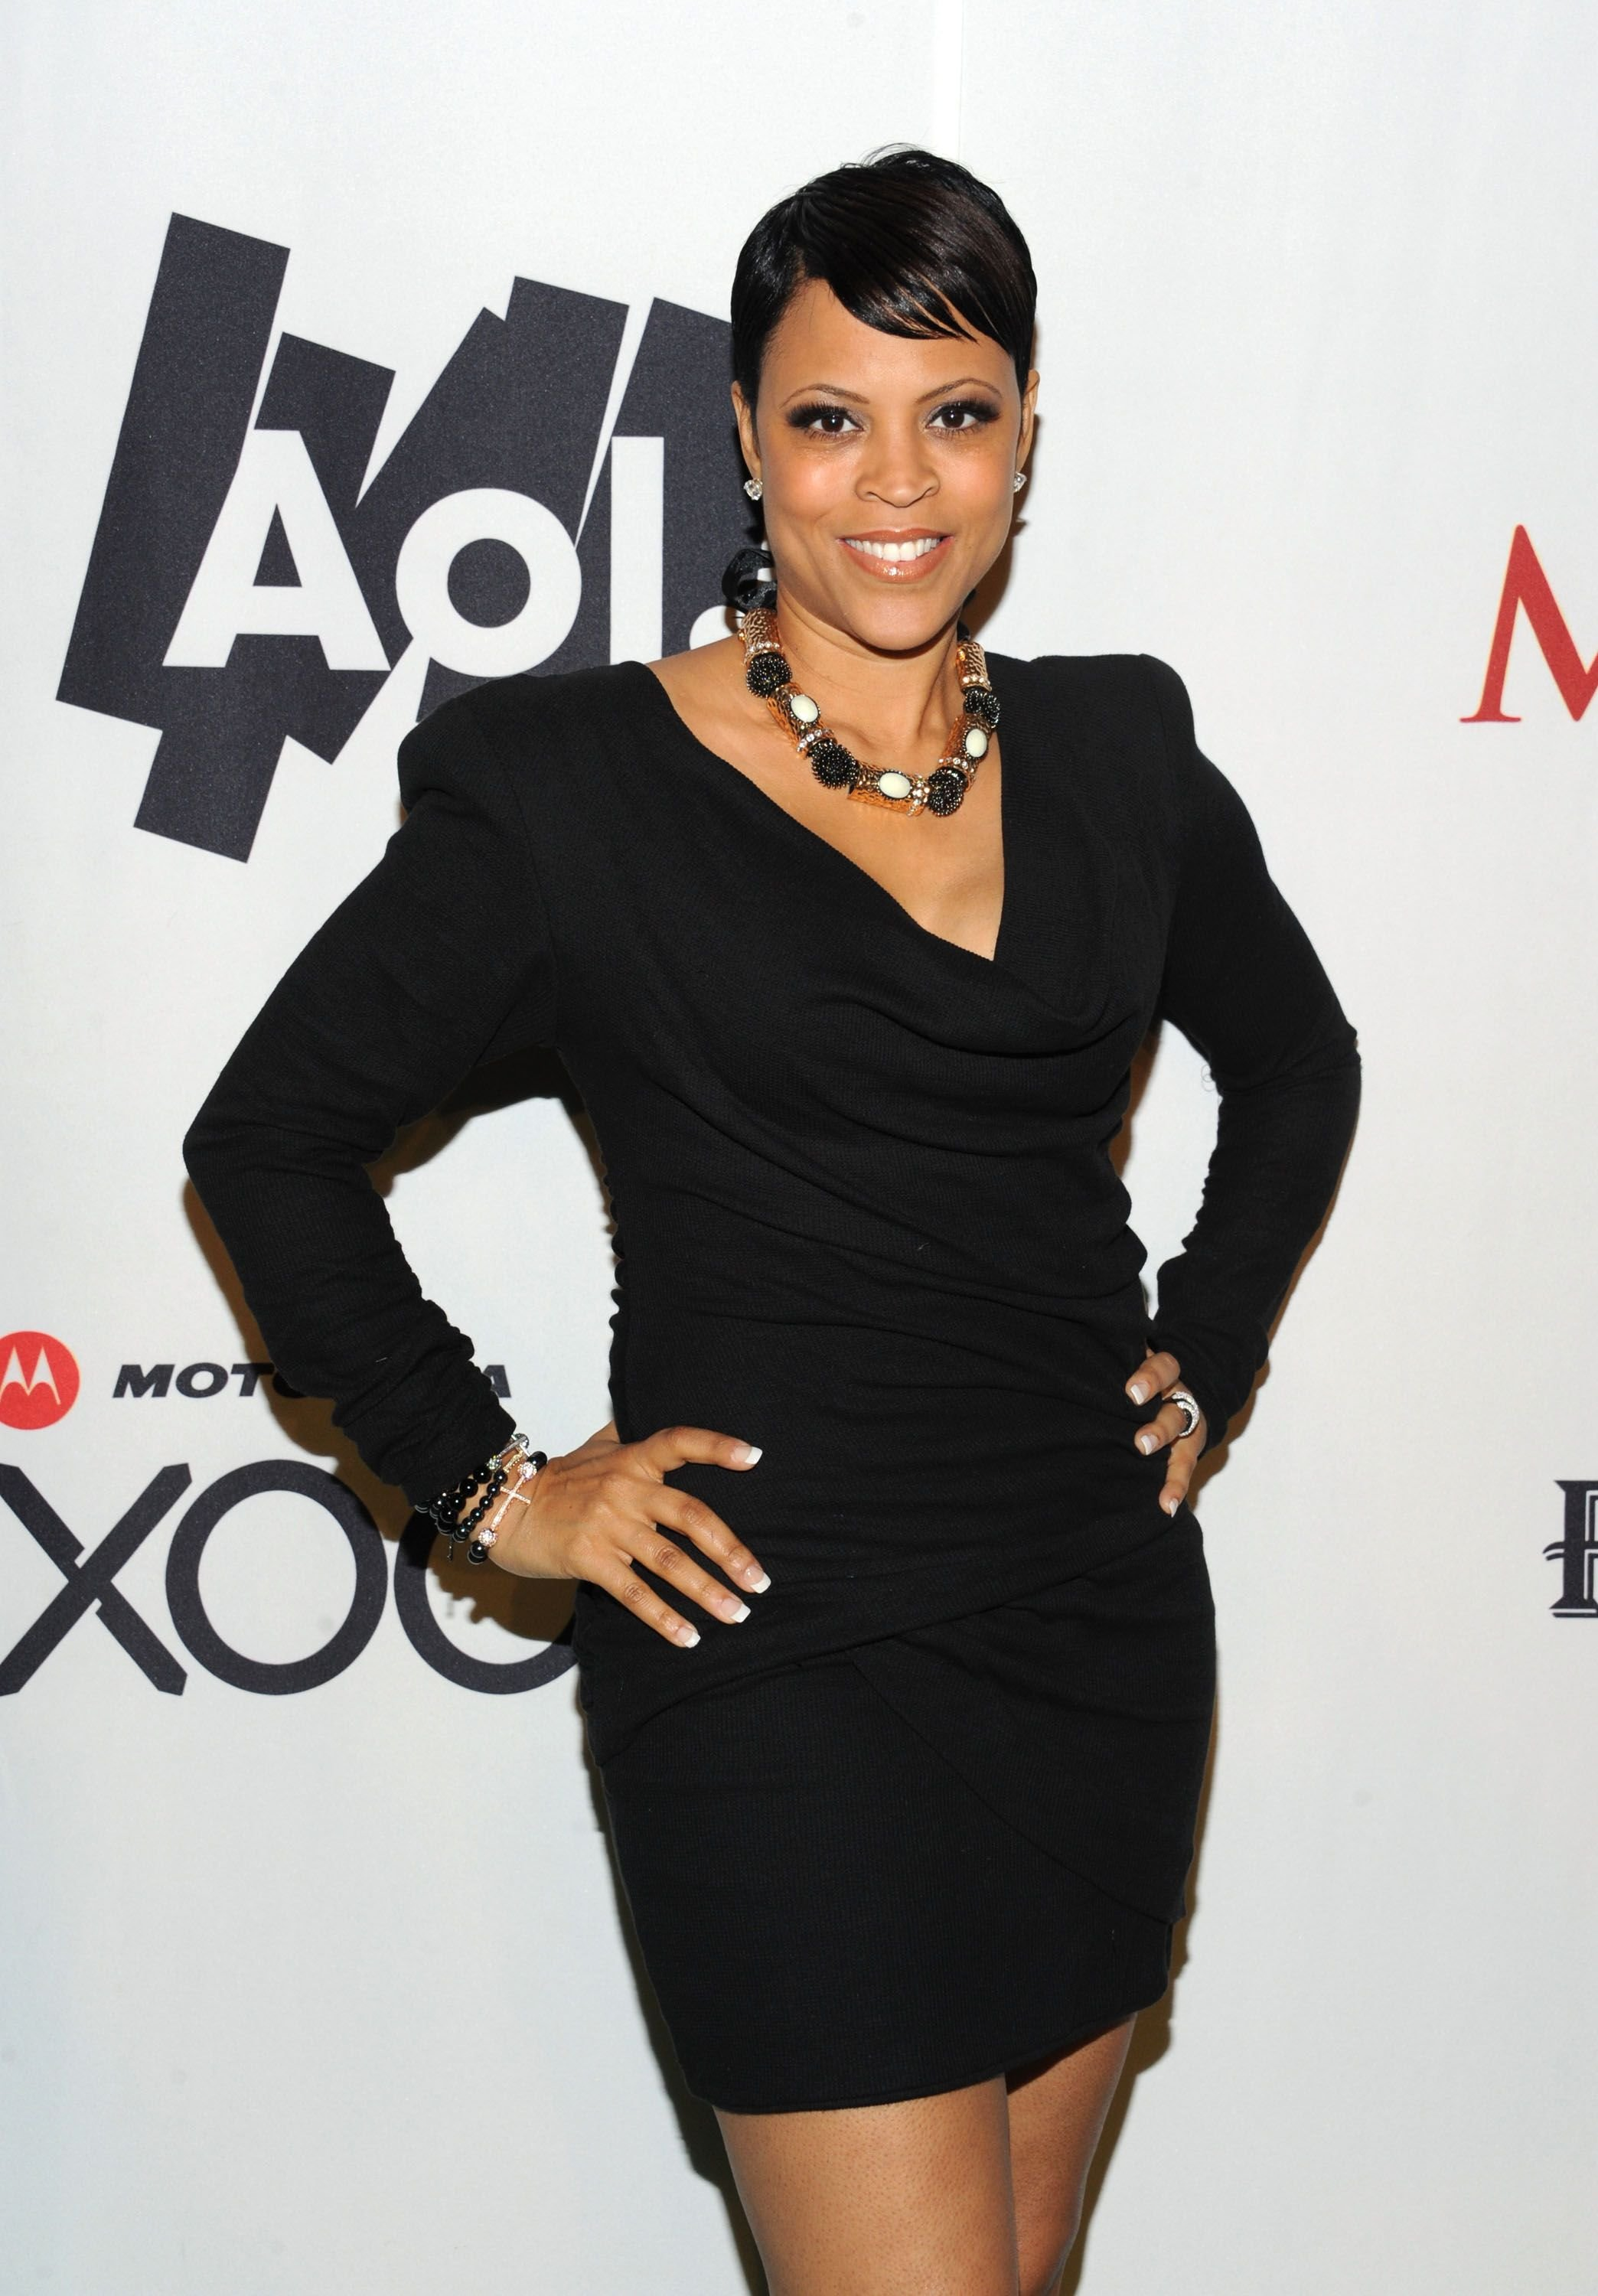 Shaunie O'Neal at the Maxim Party Powered by Motorola Xoom at Centennial Hall at Fair Park on February 5, 2011 in Dallas, Texas | Photo: Getty Images